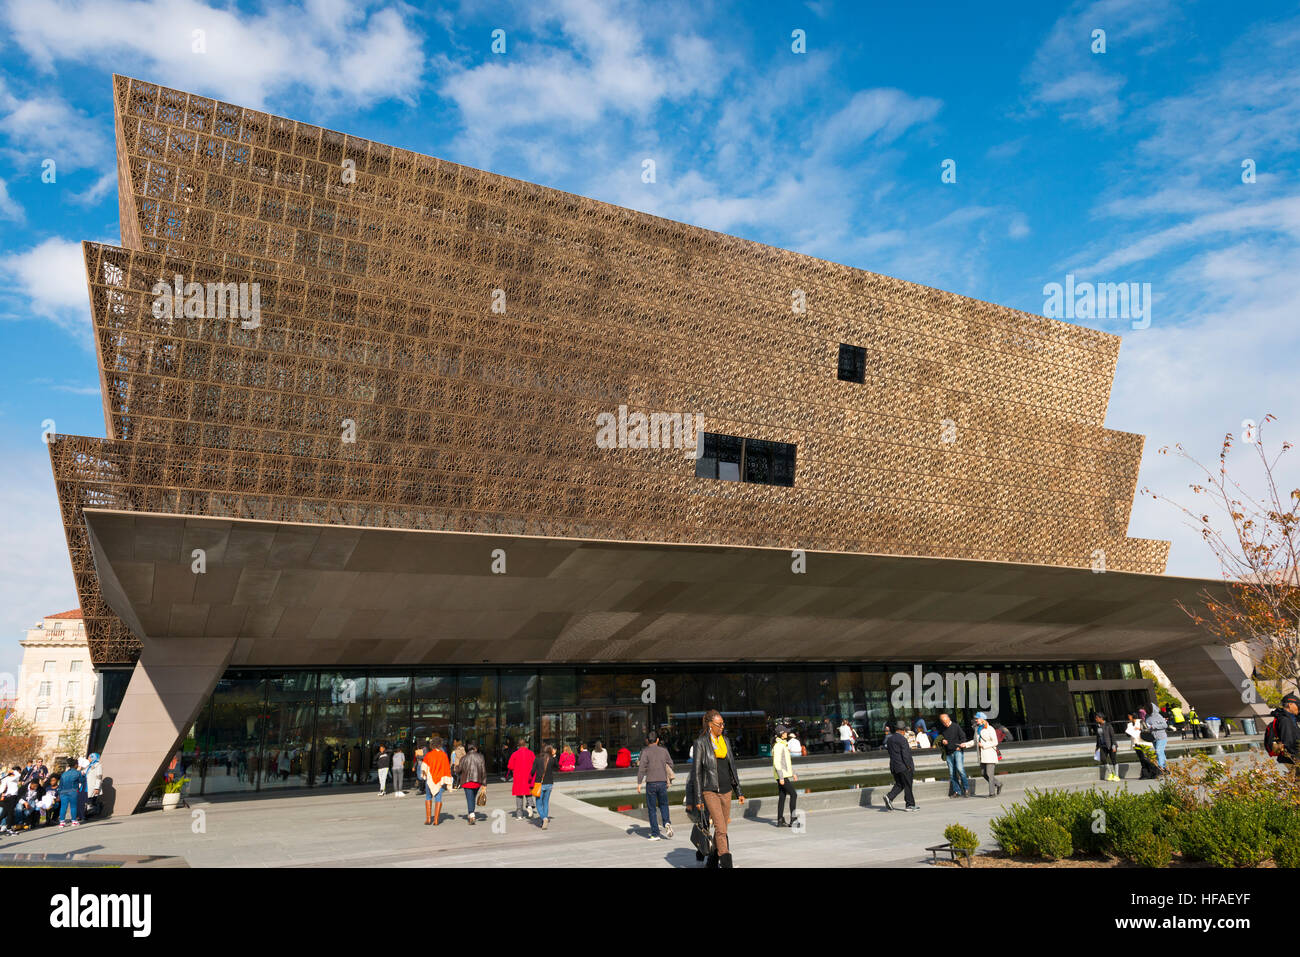 USA capital Washington DC District Columbia National Museum of African American History & Culture facade frontage - Stock Image